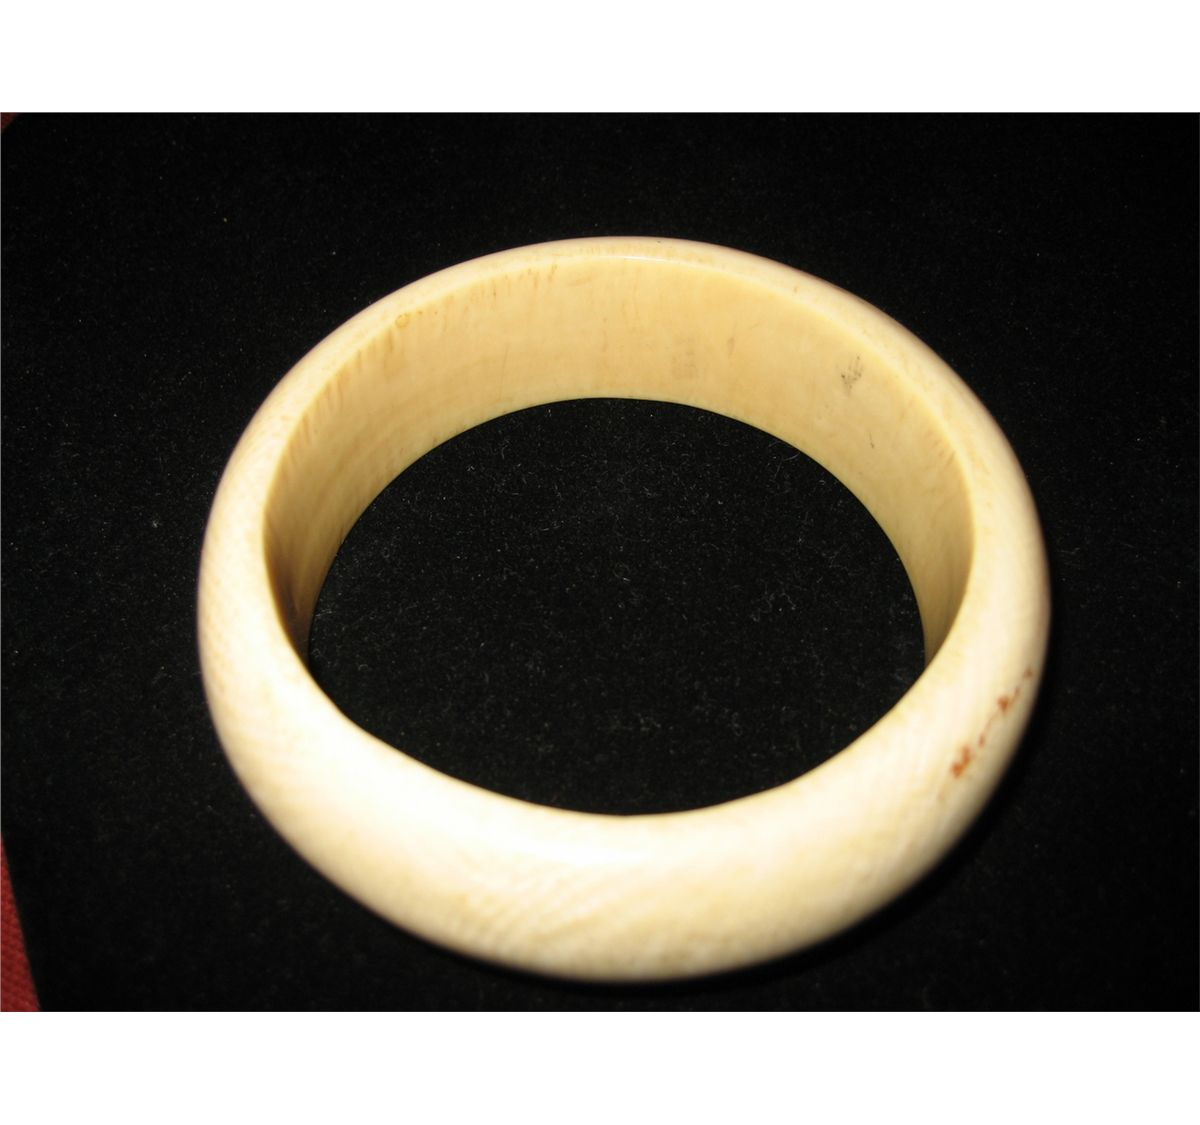 jewelry s ivory id bracelets hair tusk or and bracelet bangles women v men at elephant